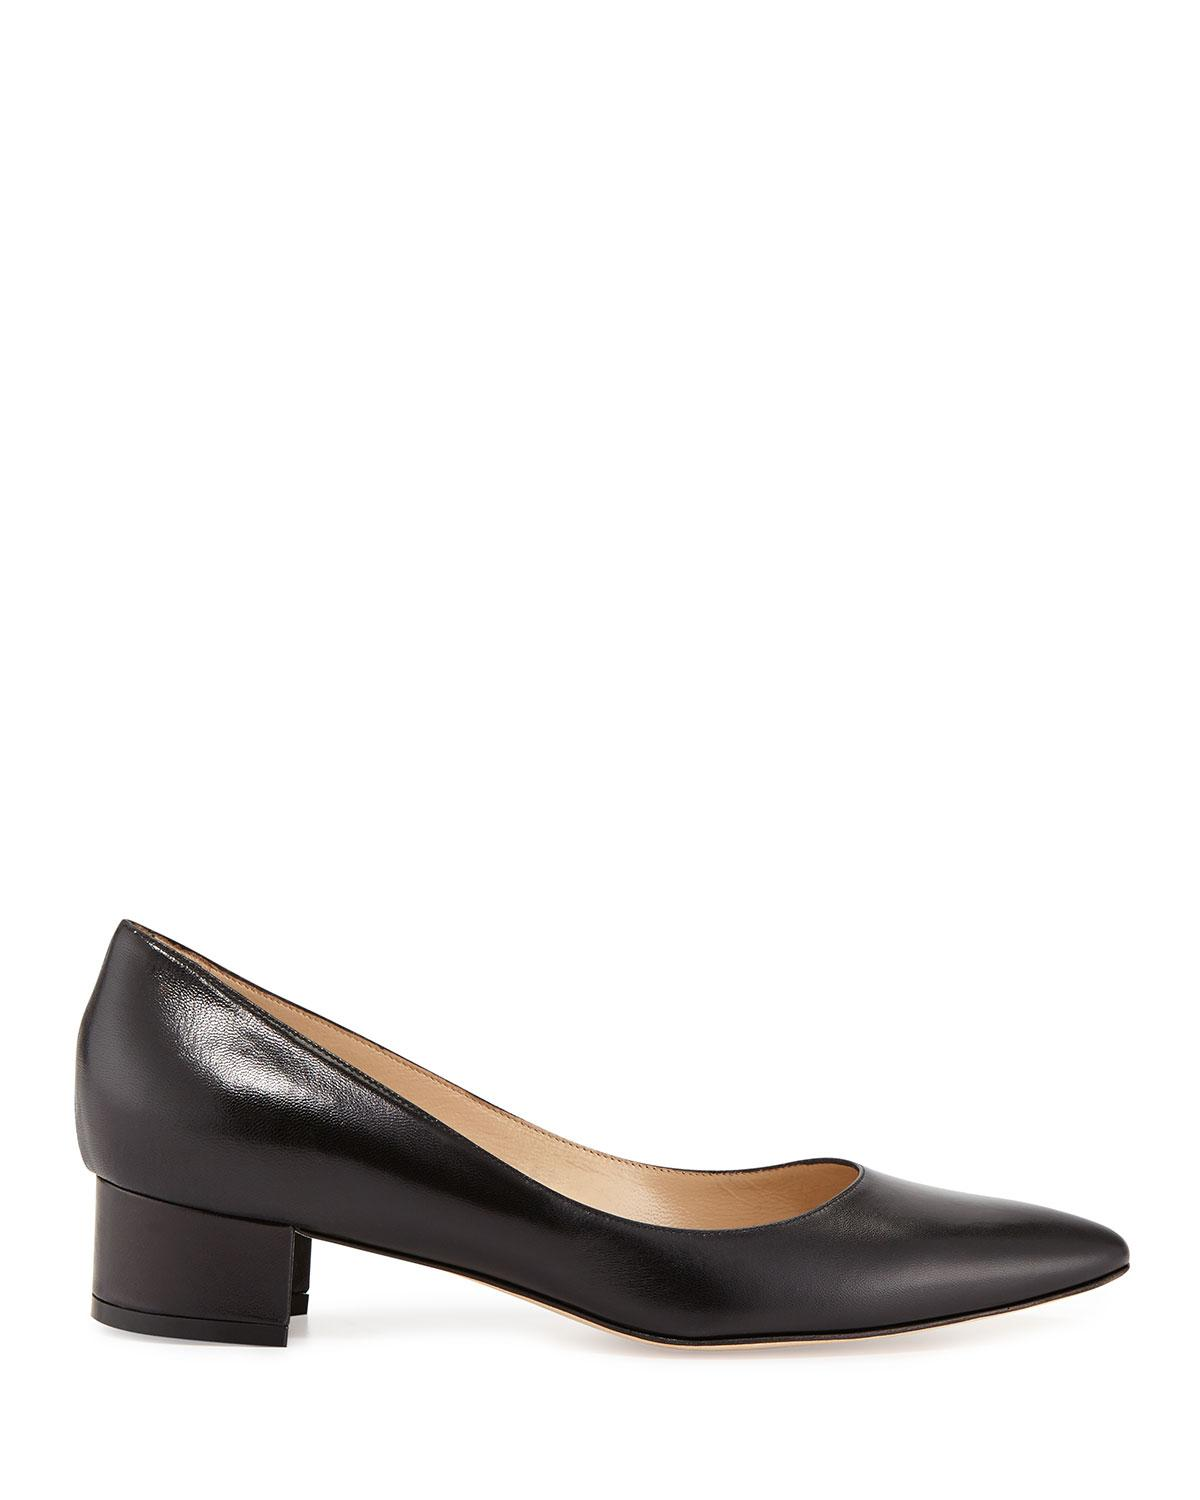 5629bedb72a56 Manolo Blahnik Listony Leather Low-heel Pump in Black - Lyst